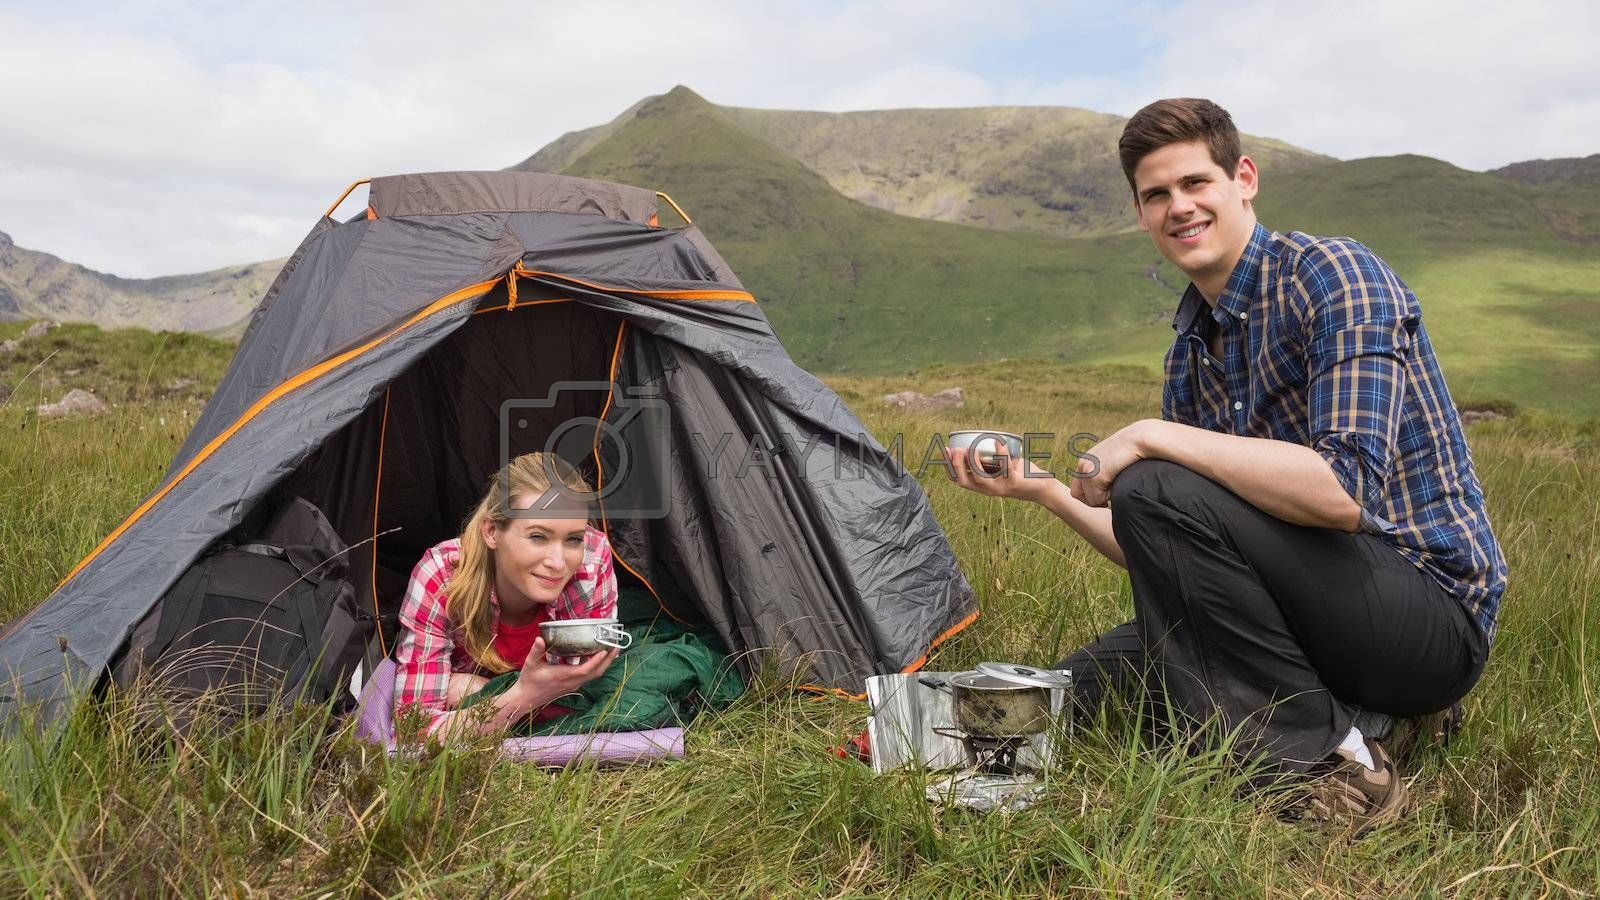 Smiling couple cooking outdoors on camping trip by Wavebreakmedia